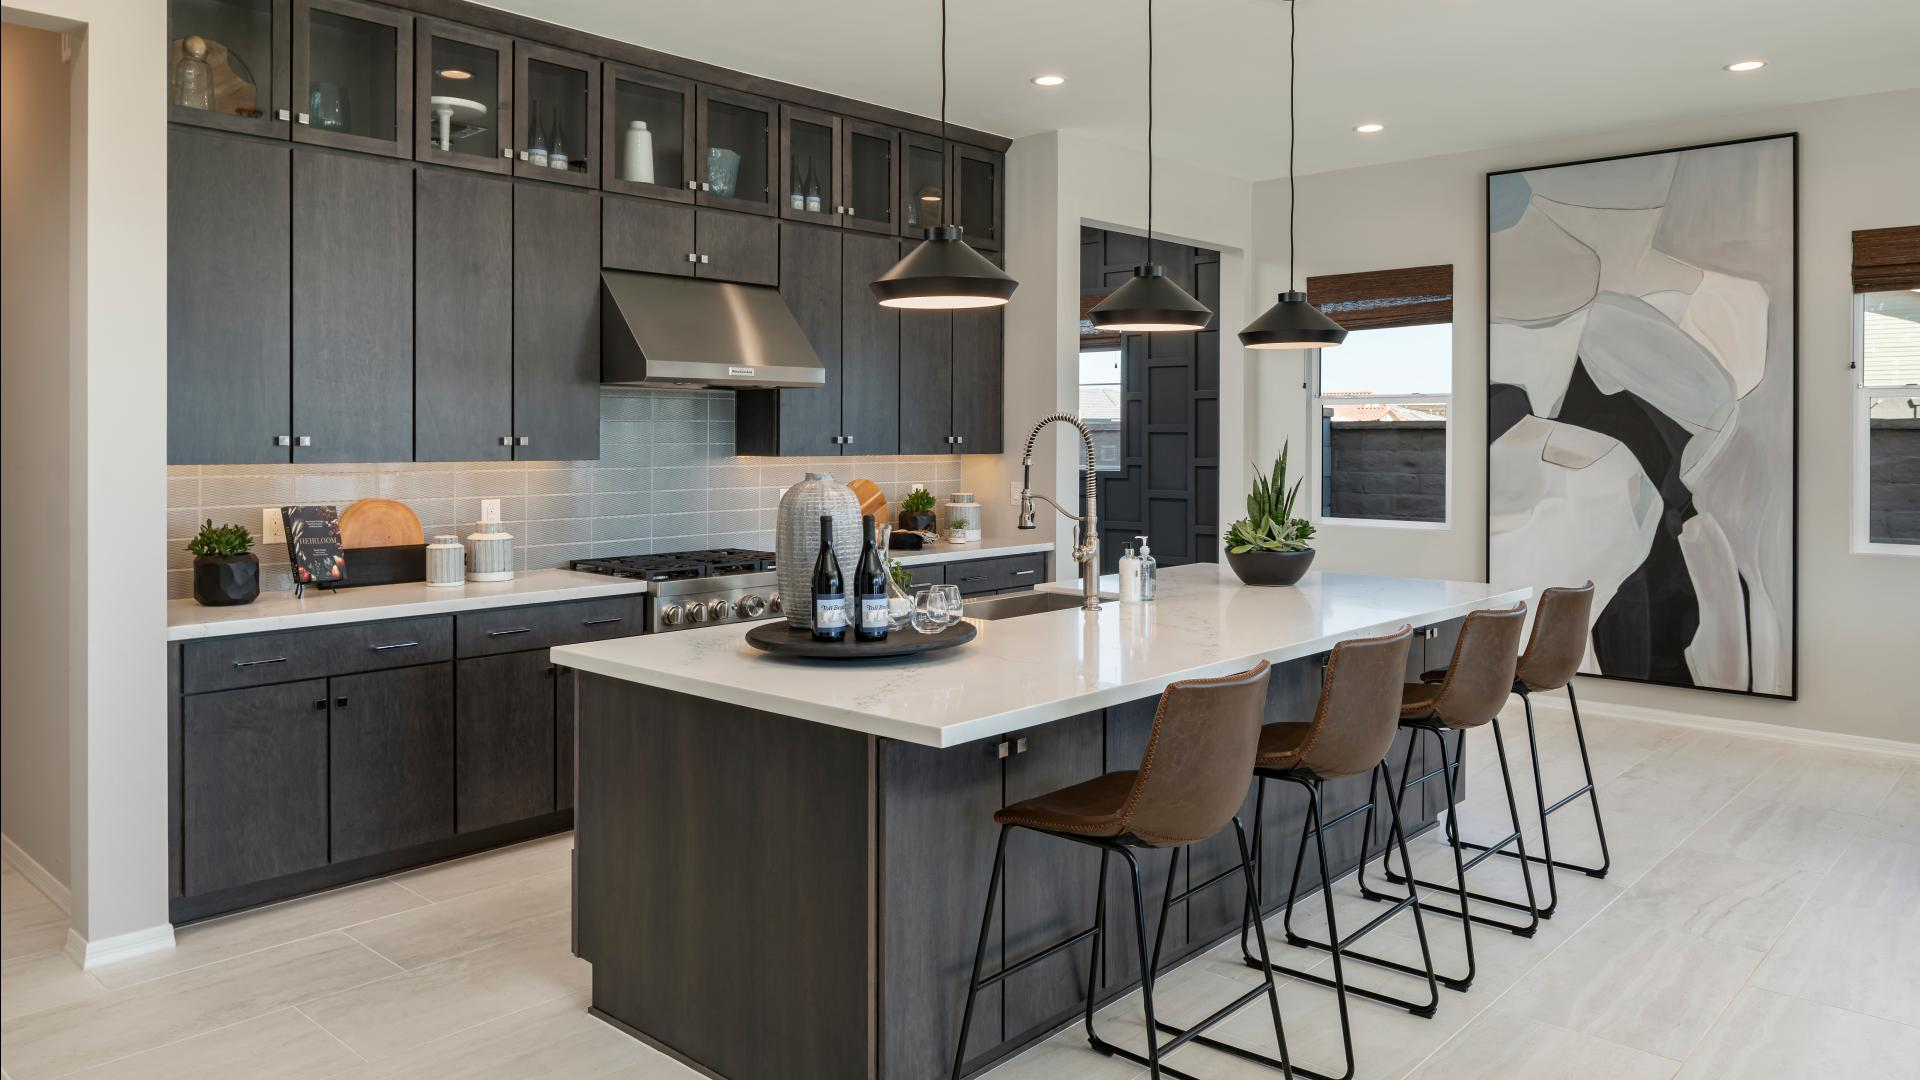 Well-designed kitchens with large center island, breakfast bar, and sizeable pantry